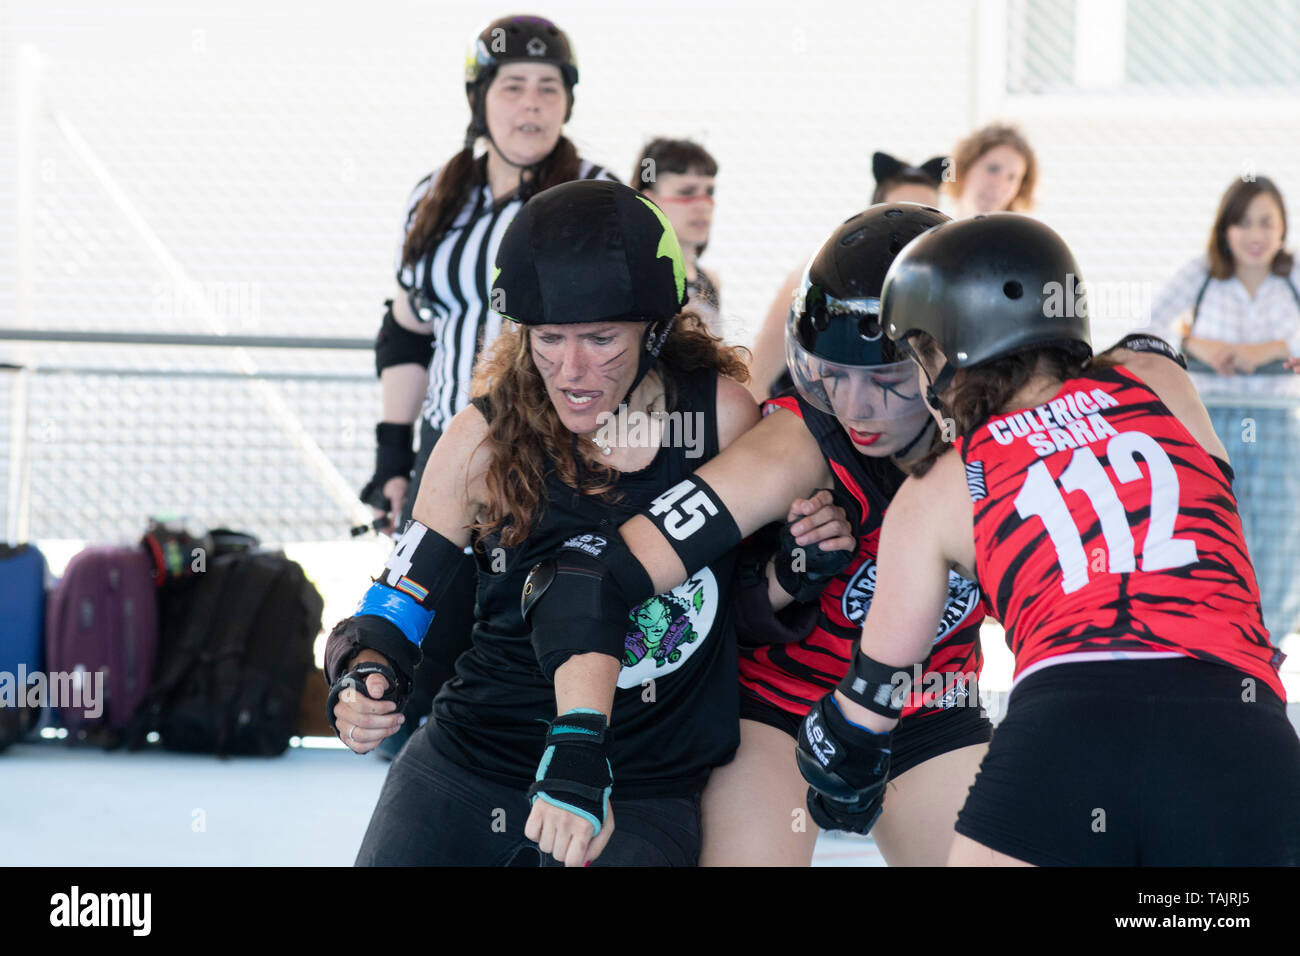 Madrid, Spain. 25th May, 2019. Jammer of Frankensteam, Rata, fighting with two players of Roller Derby Madrid B. - Stock Image